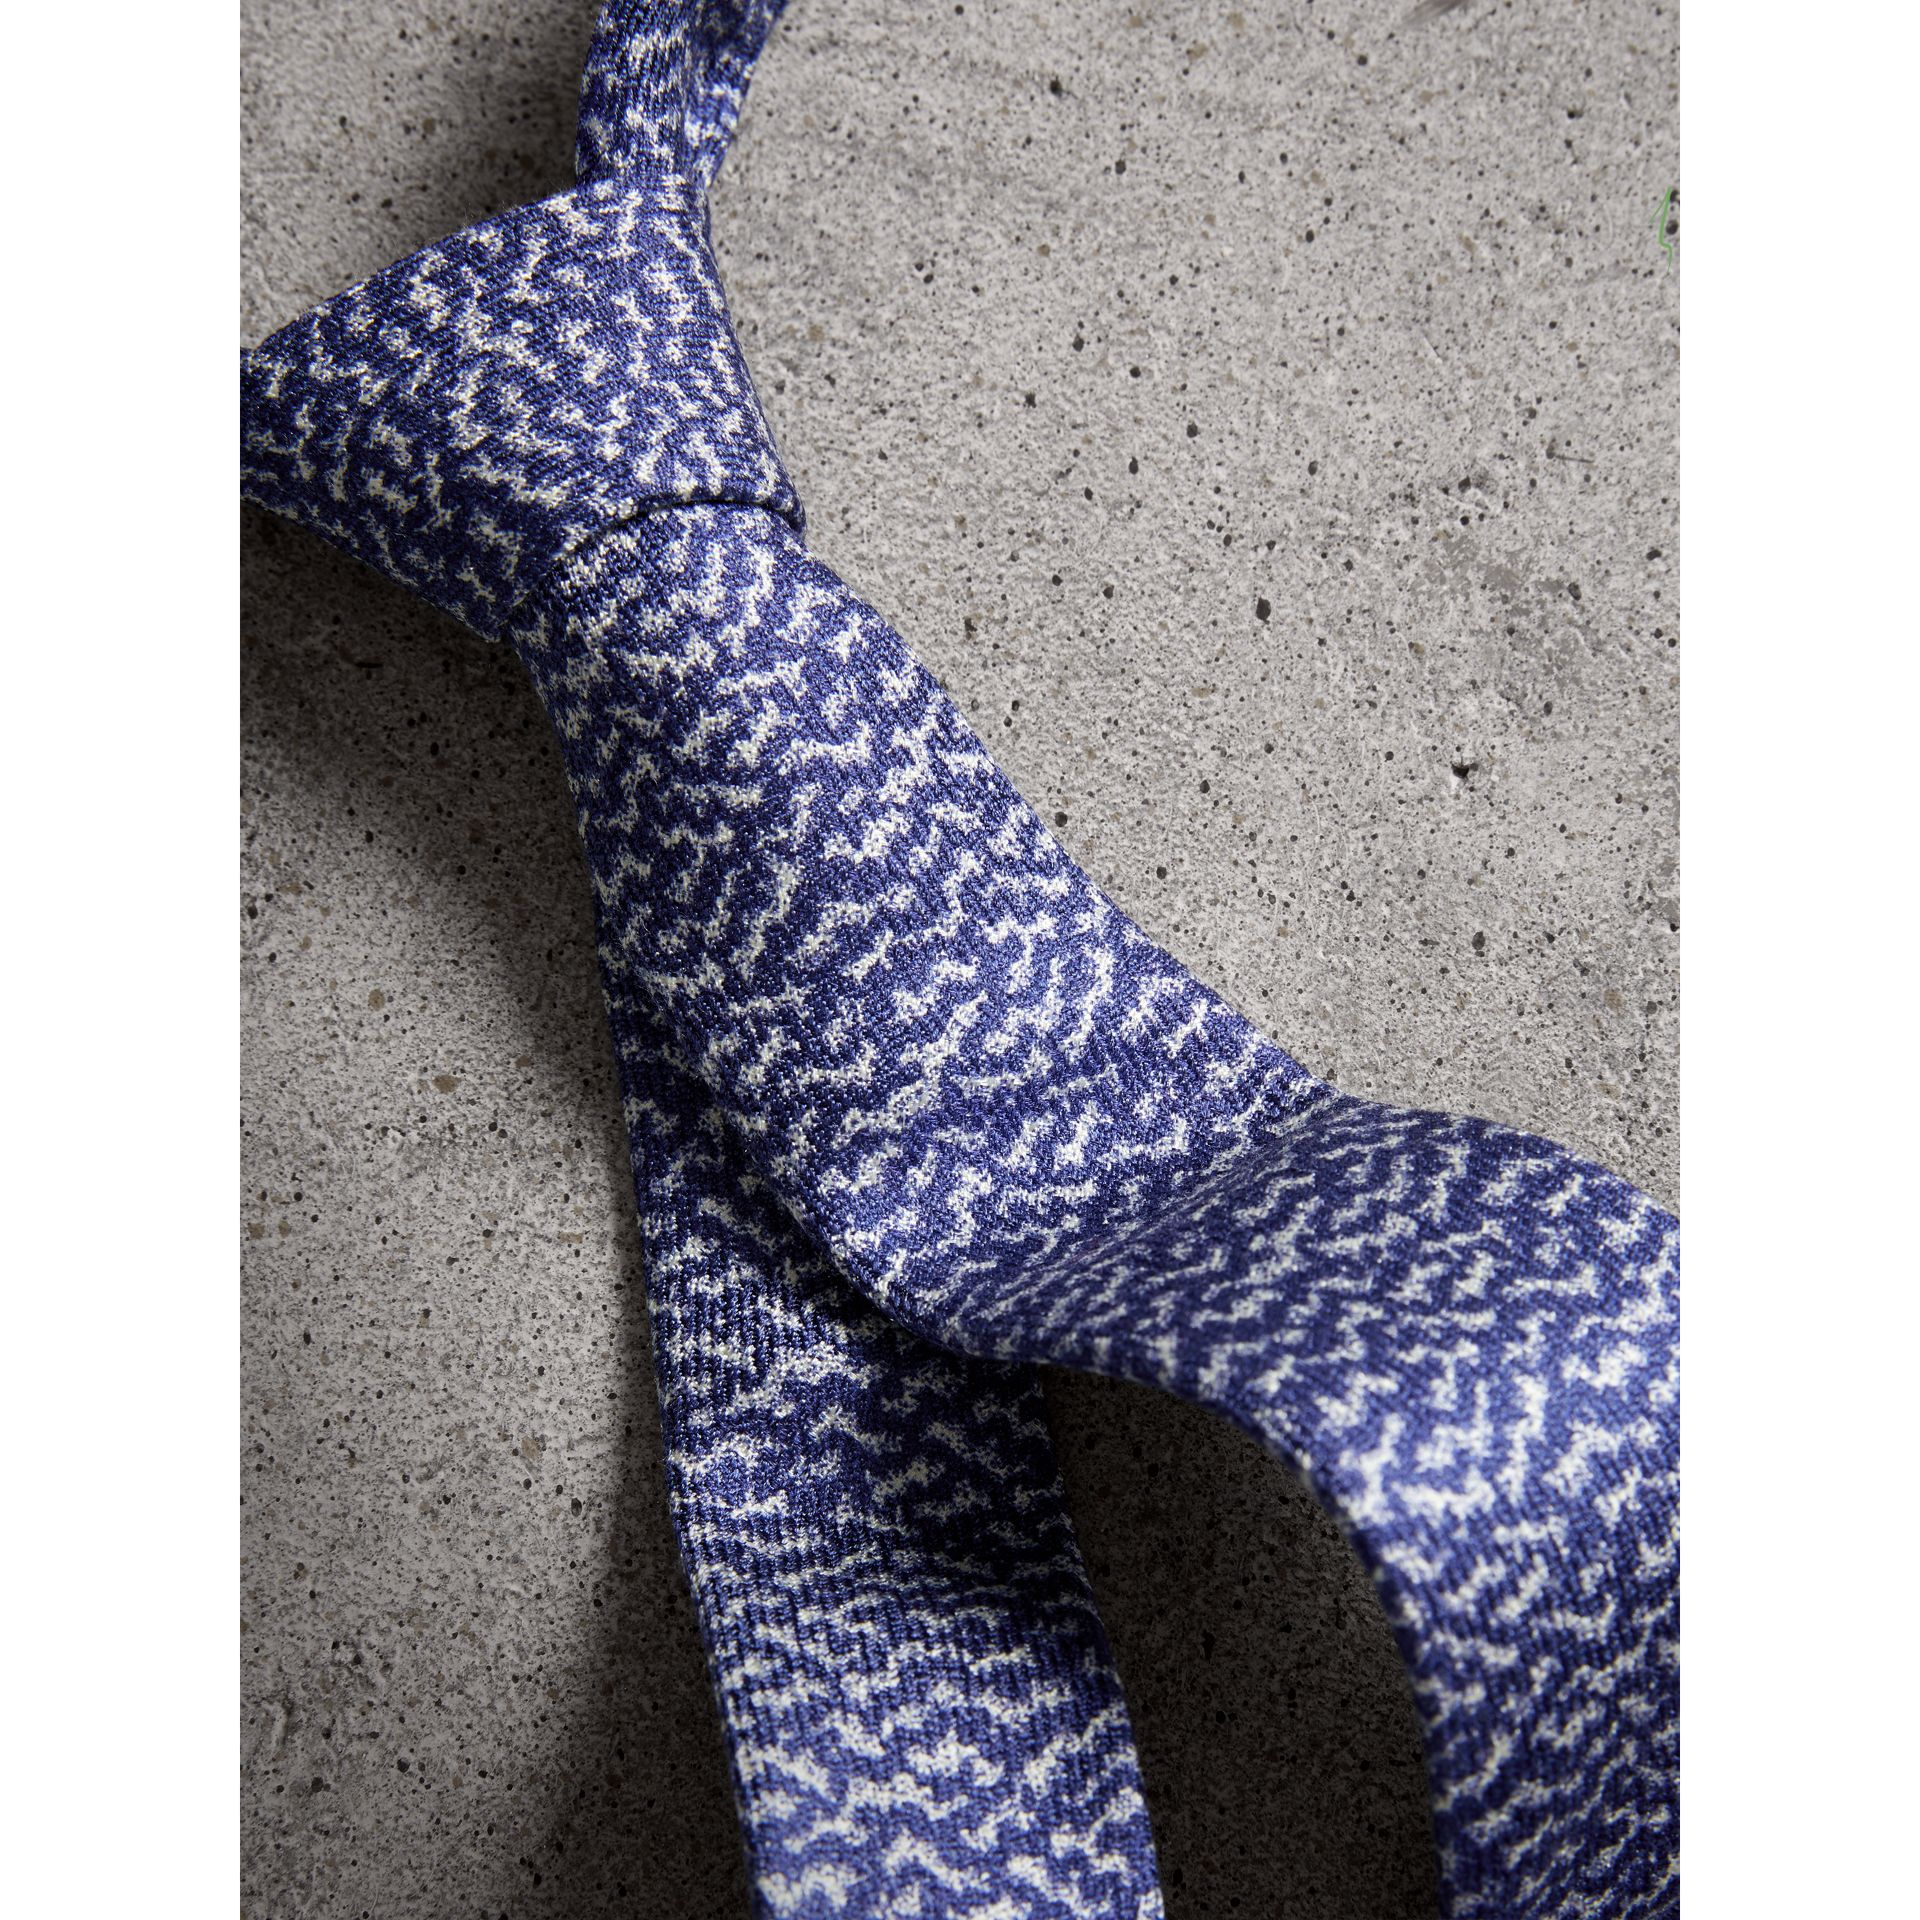 Slim Cut Ripple Print Silk Tie in Cobalt Blue - Men | Burberry United Kingdom - gallery image 1